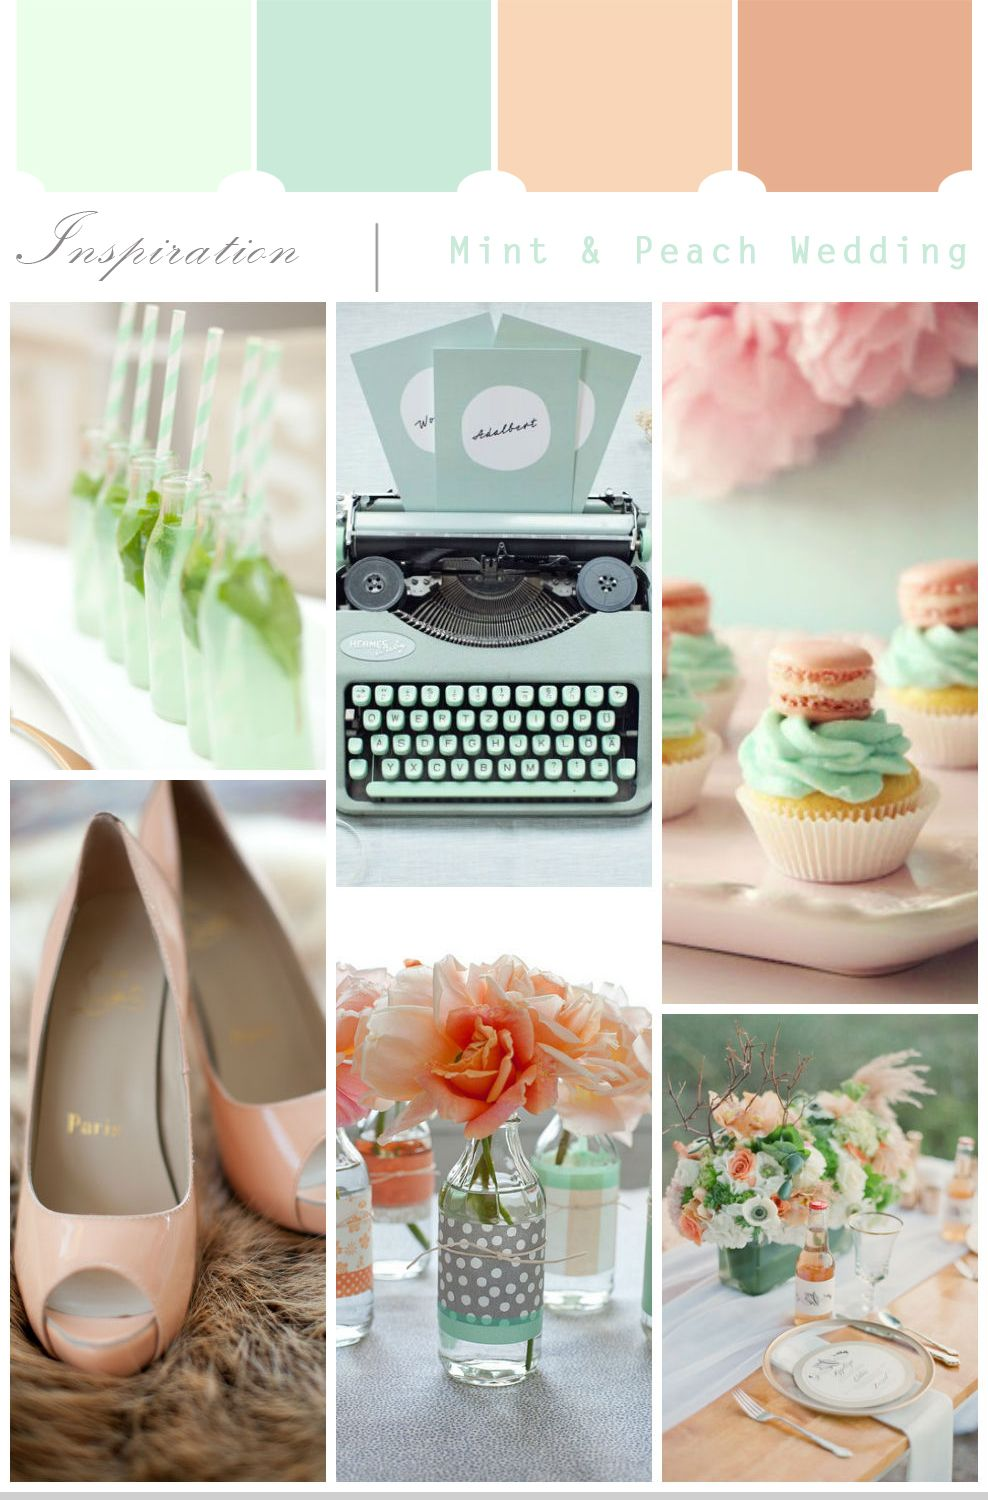 Wedding decoration ideas peach  Peach u Mint Wedding Inspiration  Weddings  Pinterest